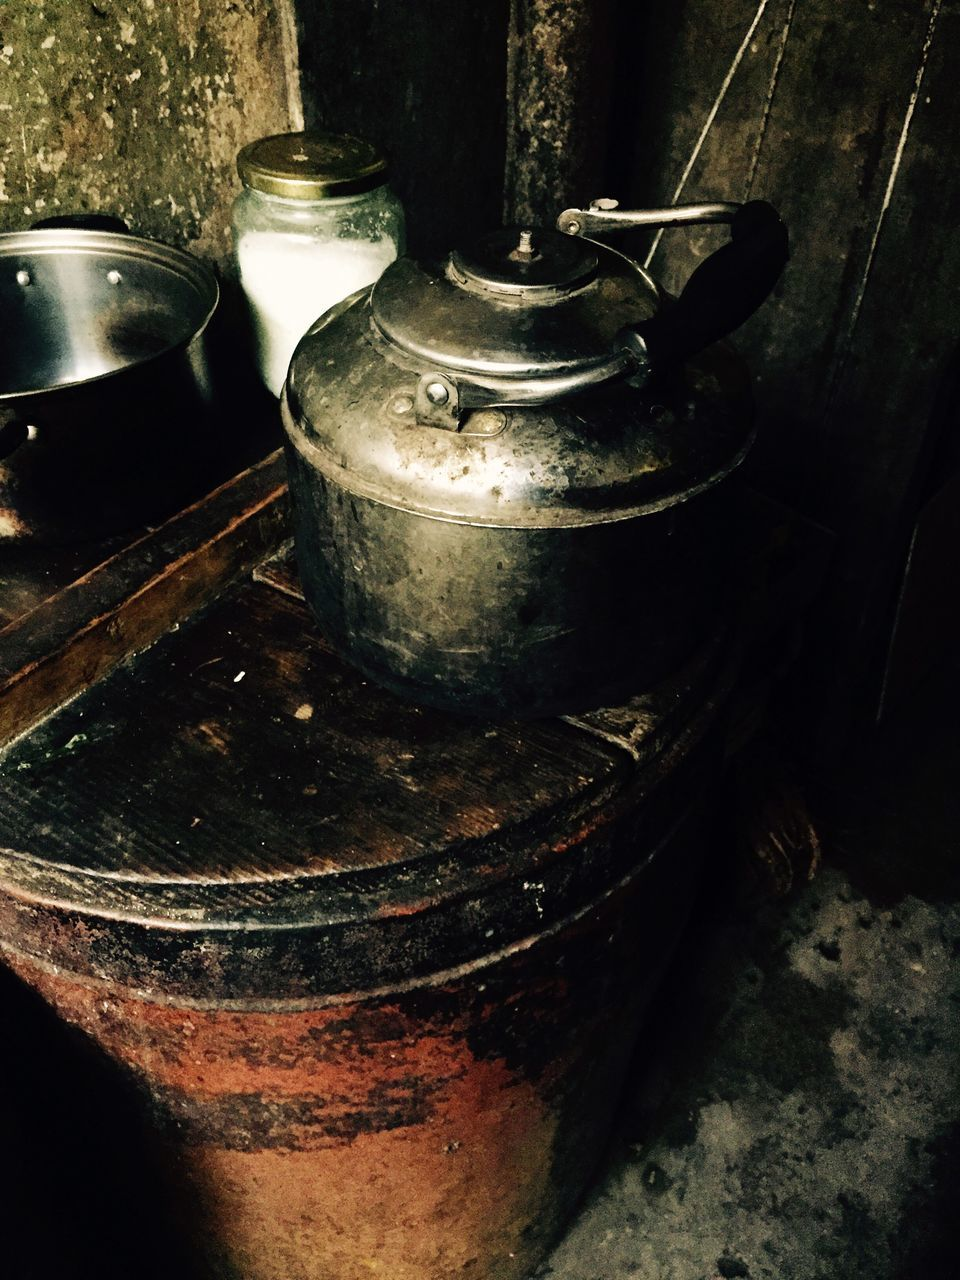 indoors, no people, high angle view, close-up, stove, day